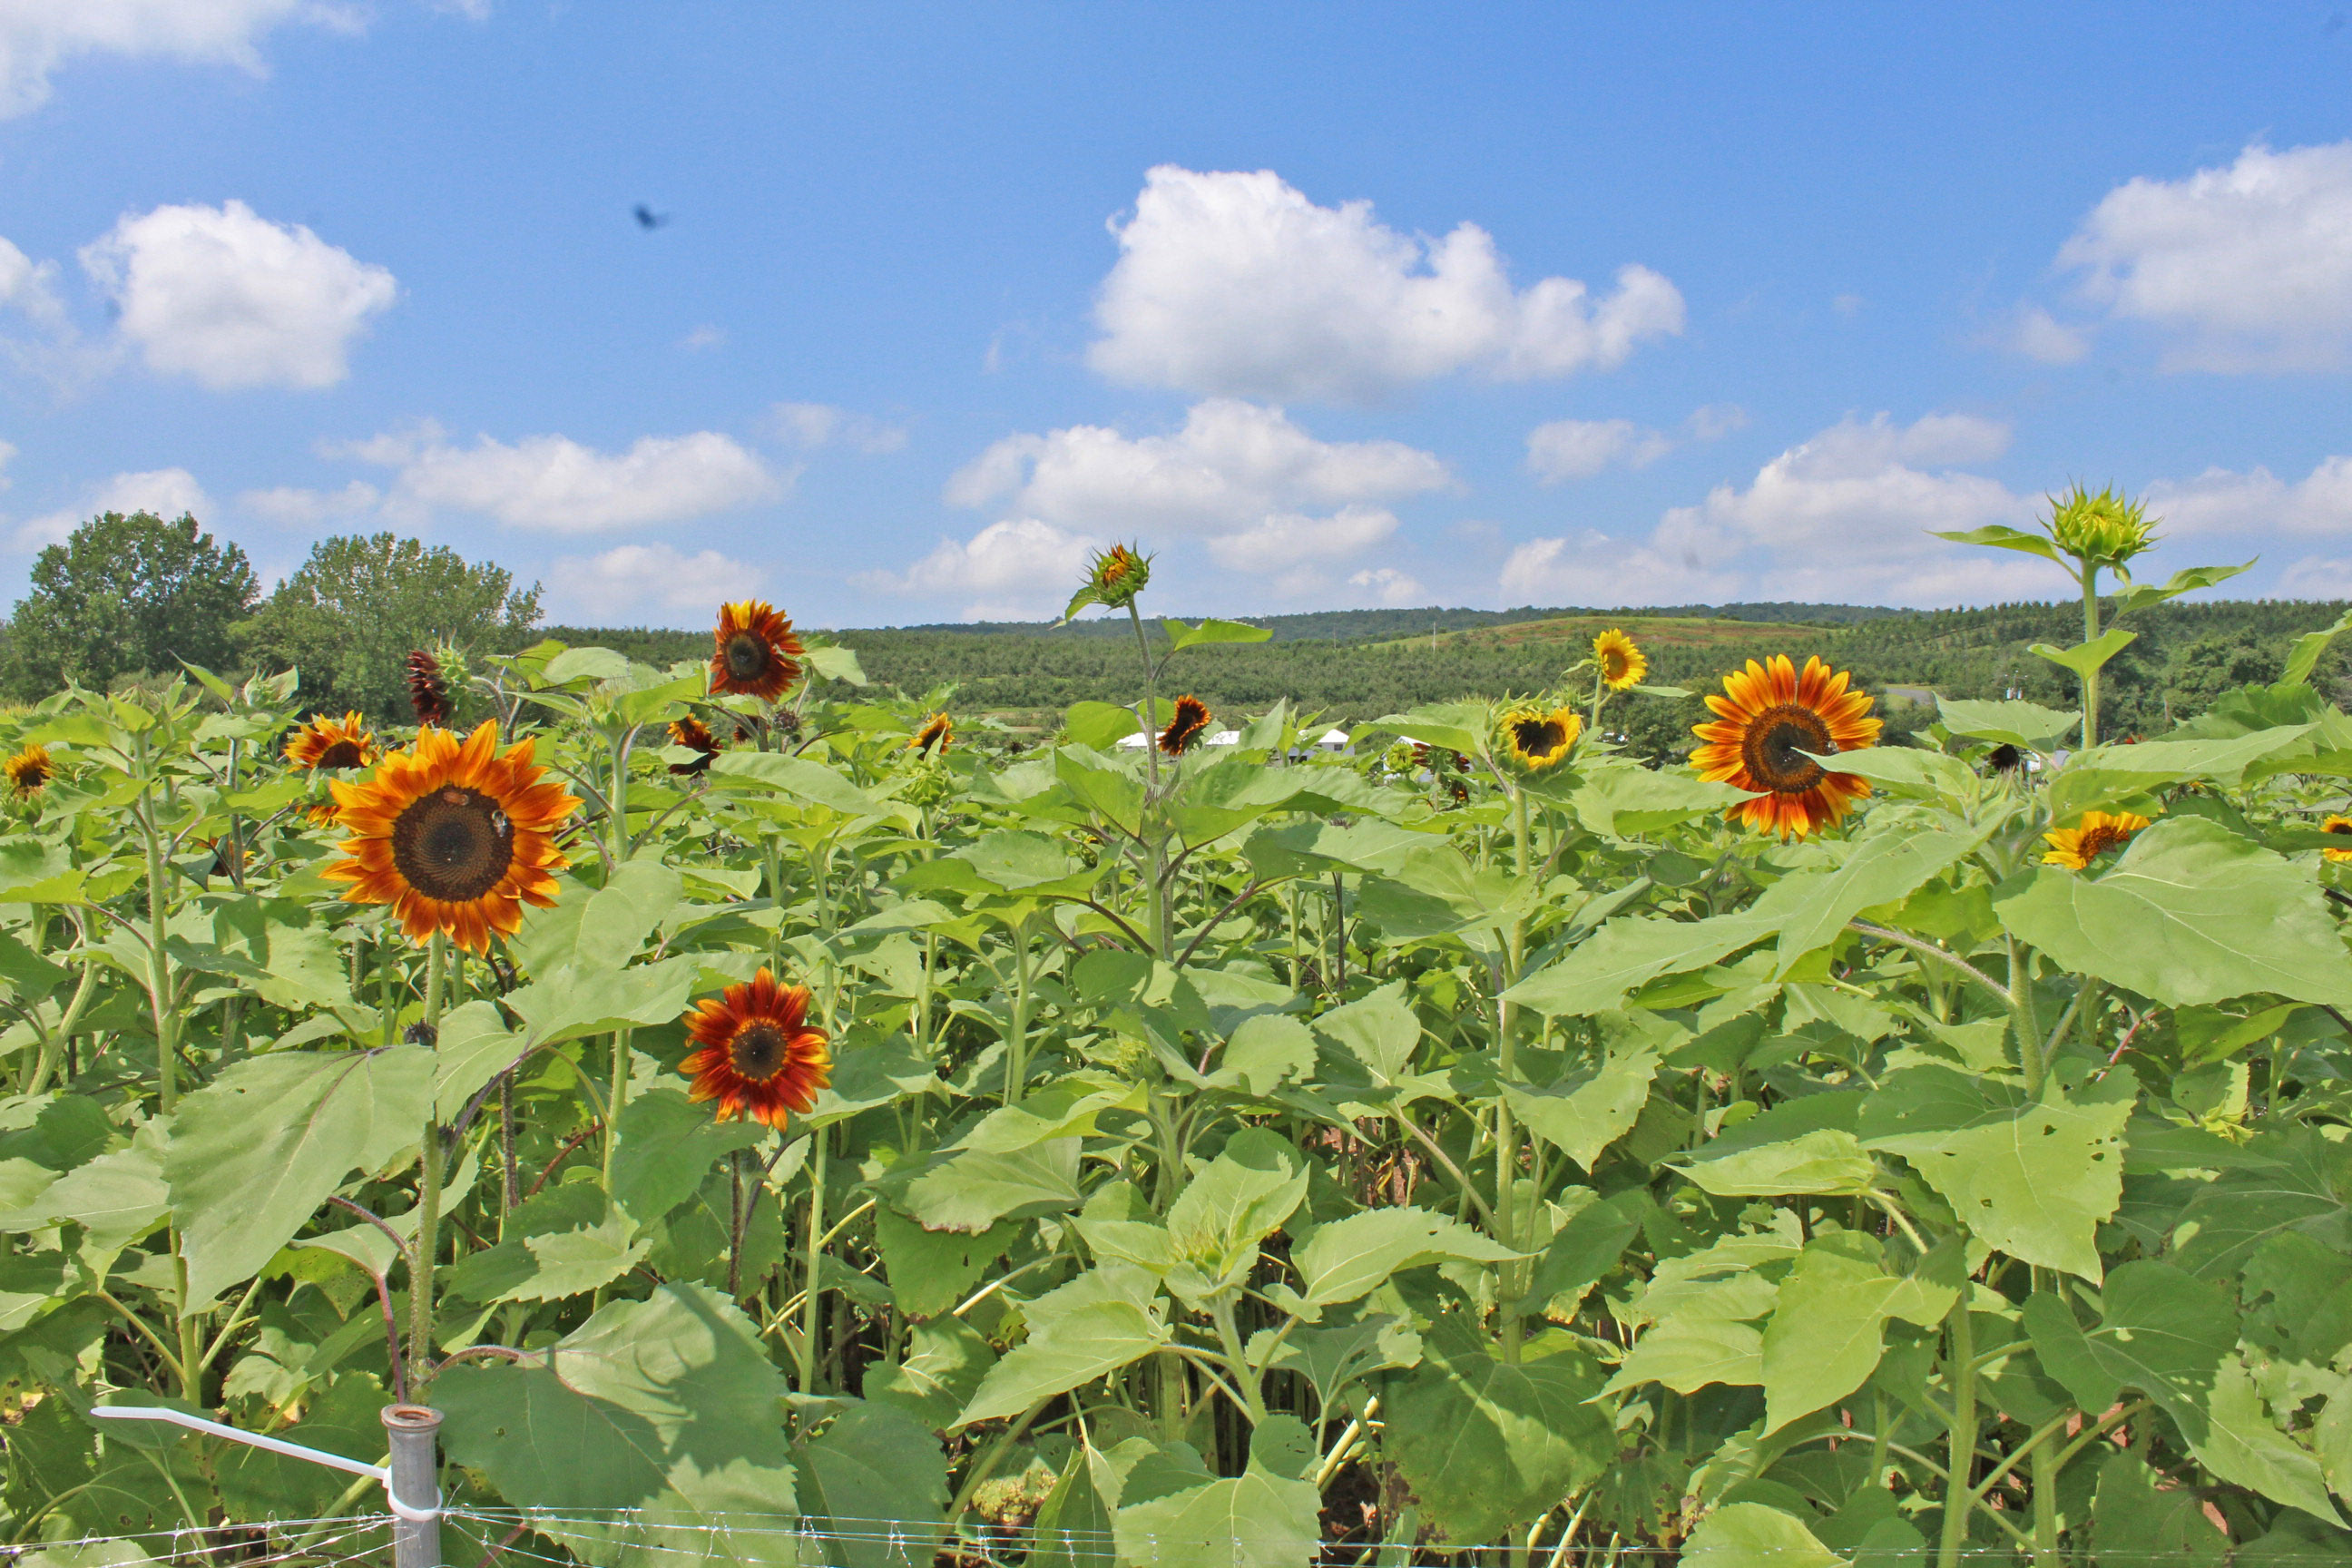 A glance at a mere few of the 350,000 sunflowers at Lyman Orchard.